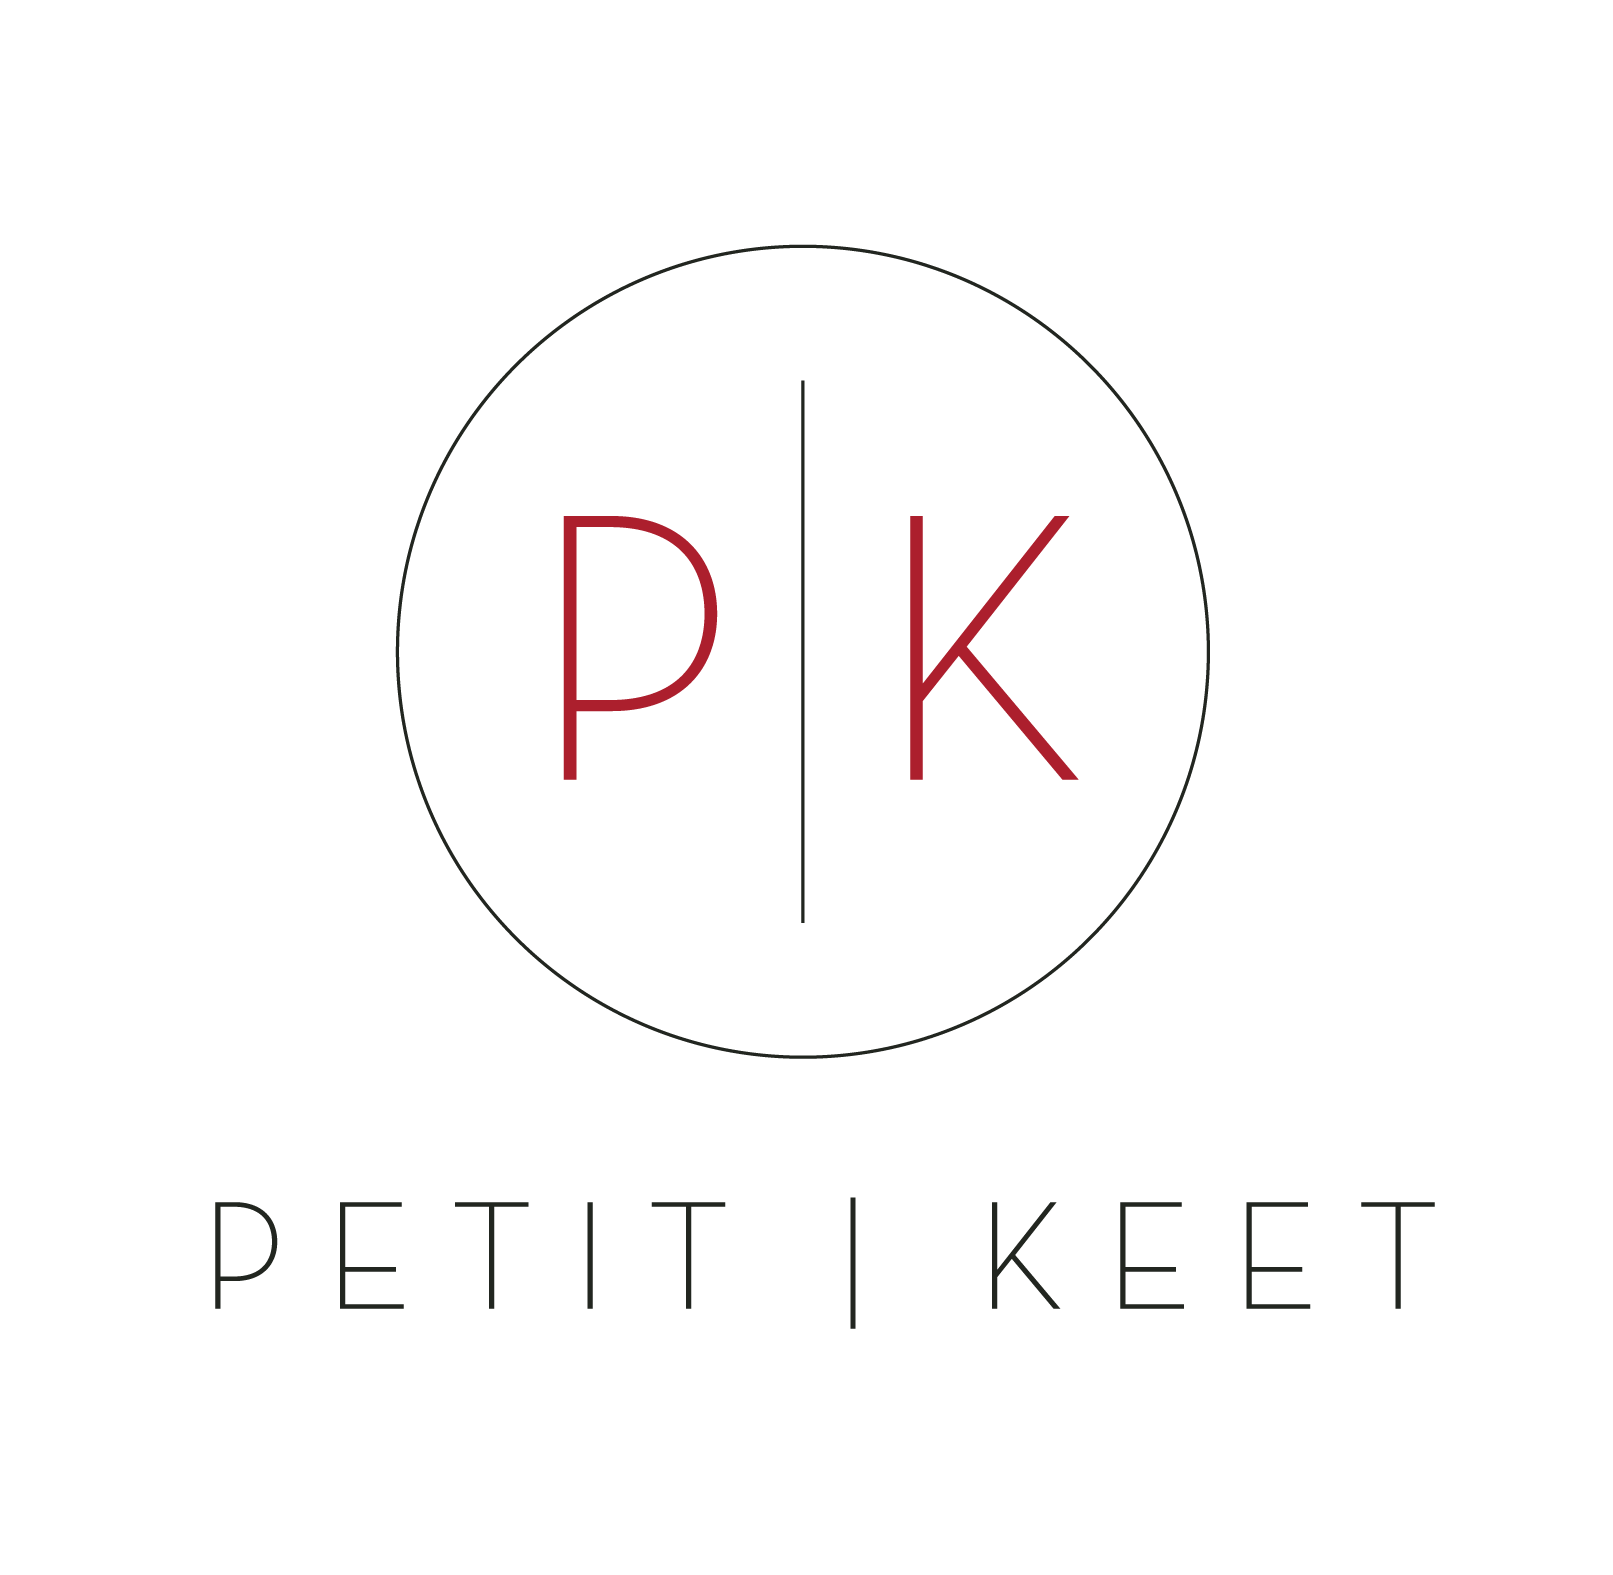 Petit and Keet - Bar and Grill